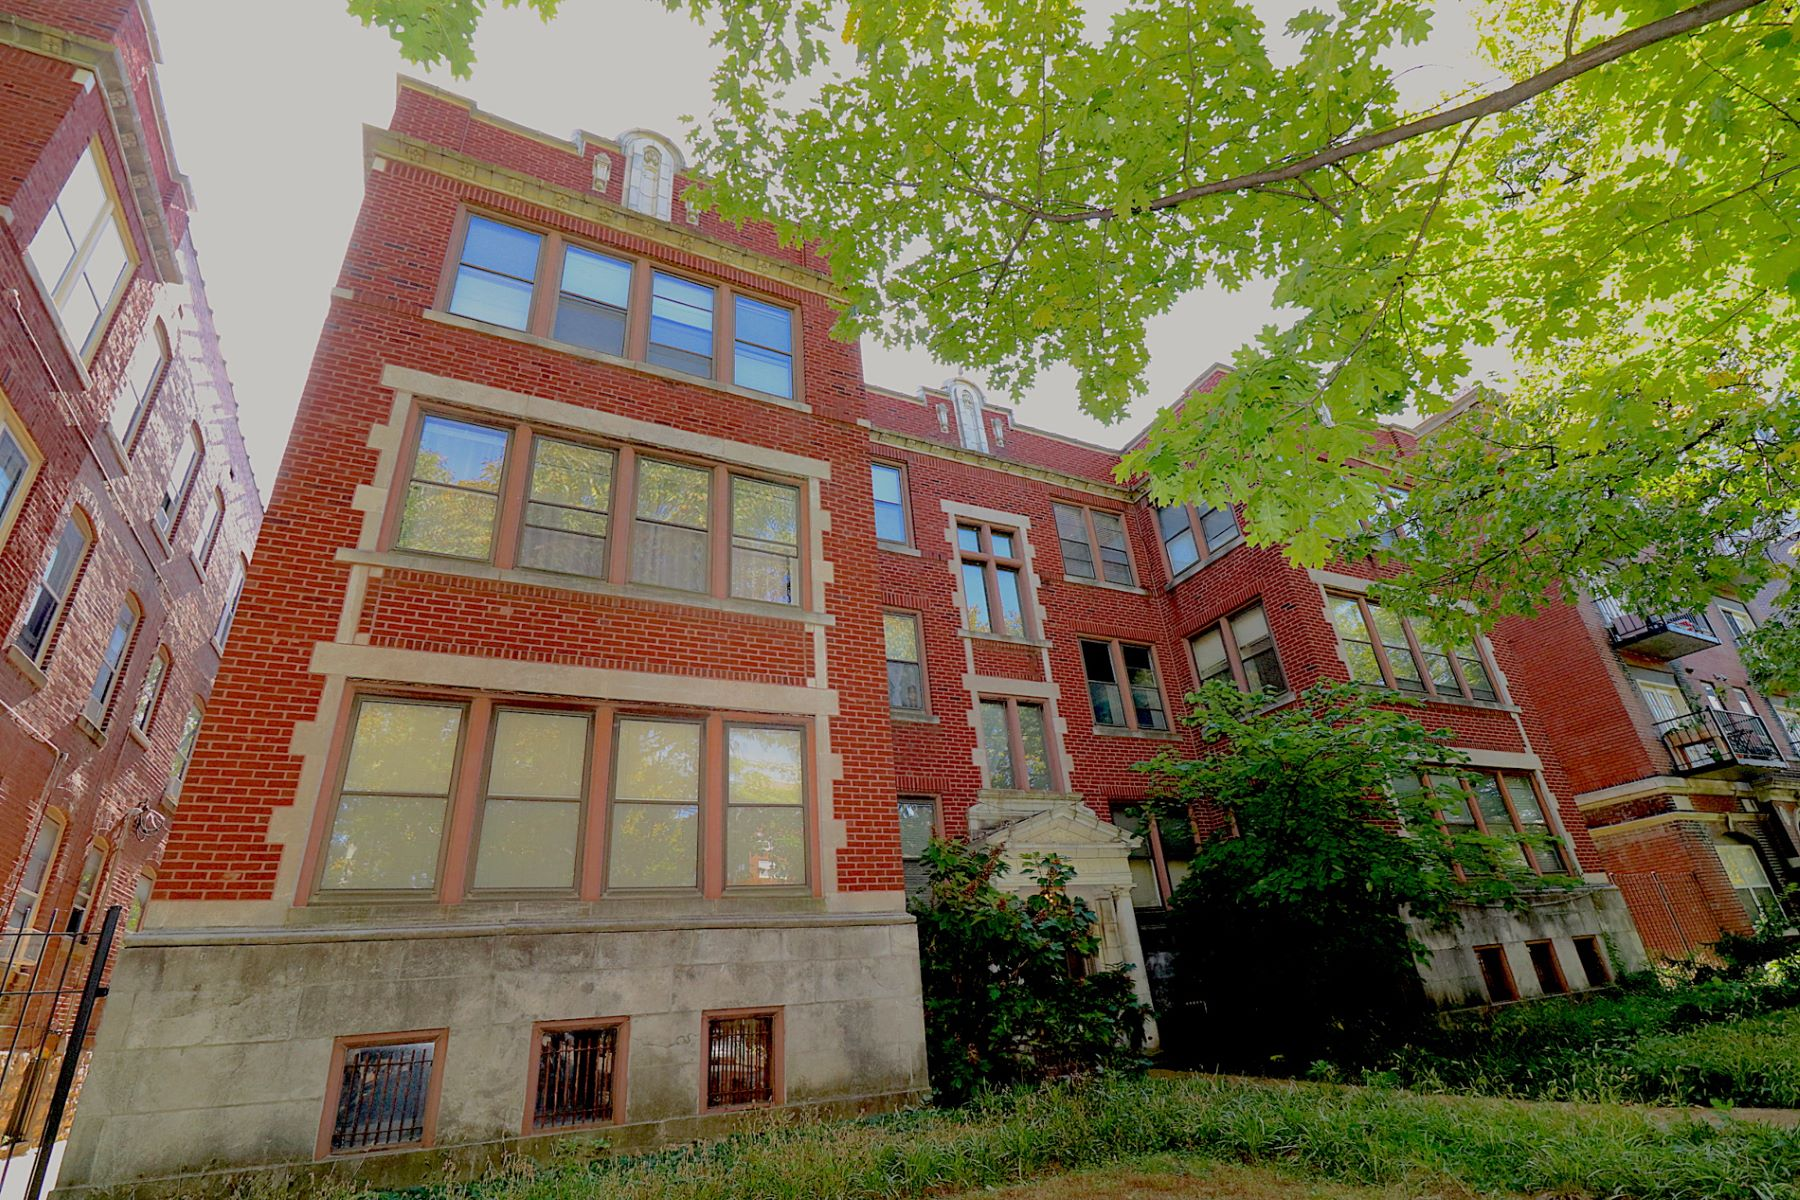 Condominium for Sale at Pershing Ave 5398 Pershing Ave # 3# St. Louis, Missouri 63112 United States